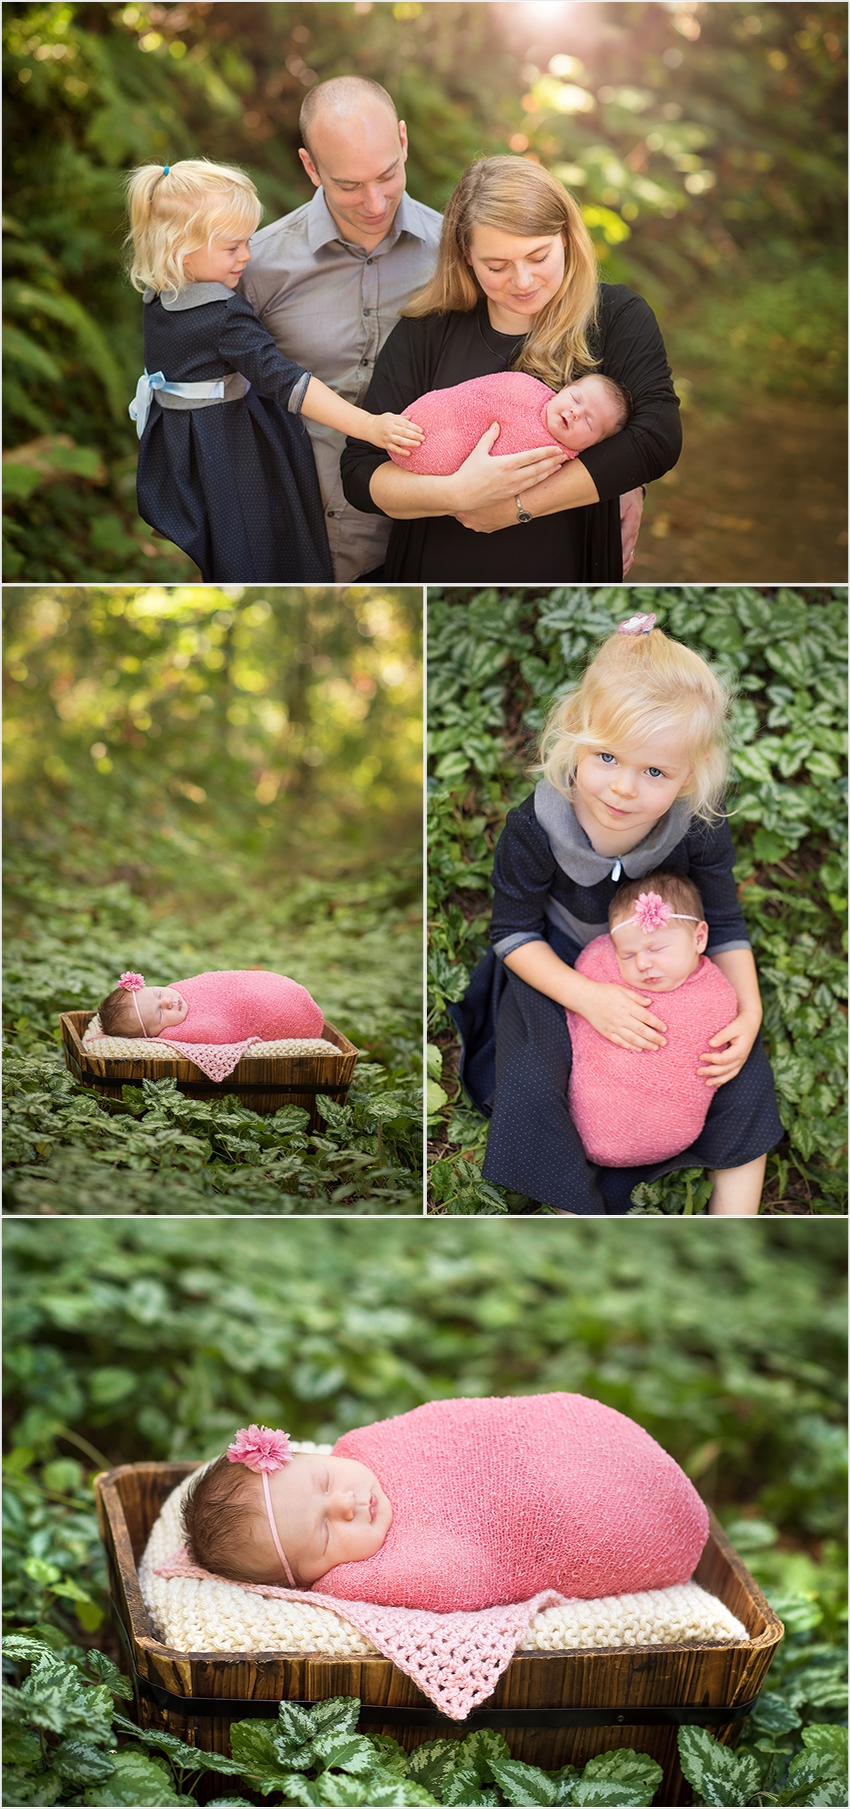 outdoor-newborn-photography-abbotsford-bc-002-side-2